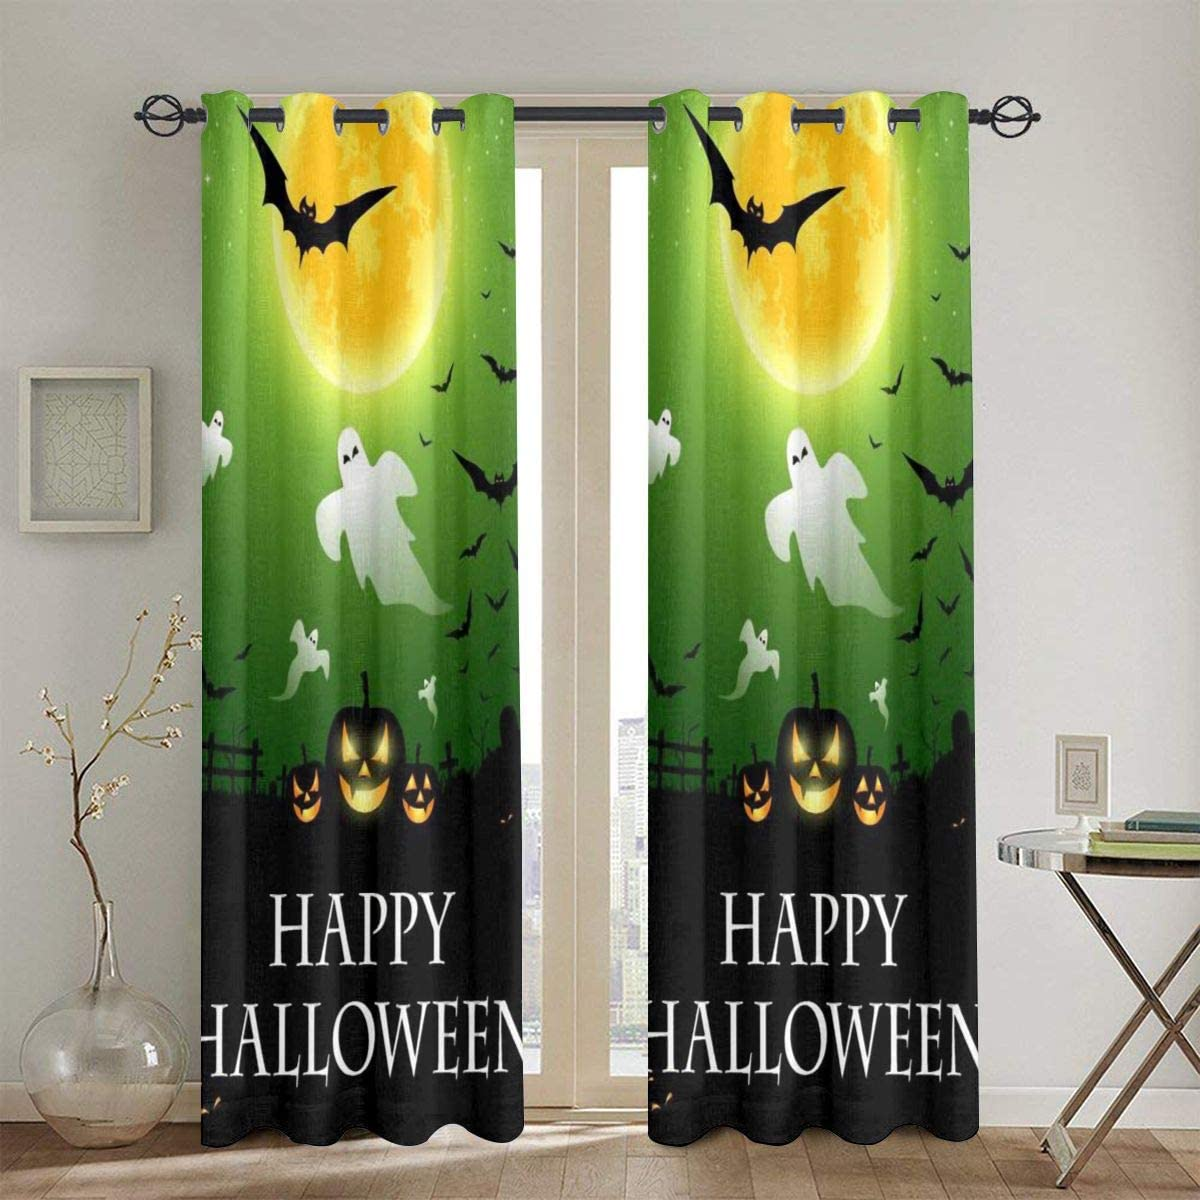 Xianlixiu Window Curtain Drapes Panels Scary Night Halloween Thermal Insulated Blackout Curtains 2 Panels for Living Room Bedroom Dining Room 52 X 84 Inch